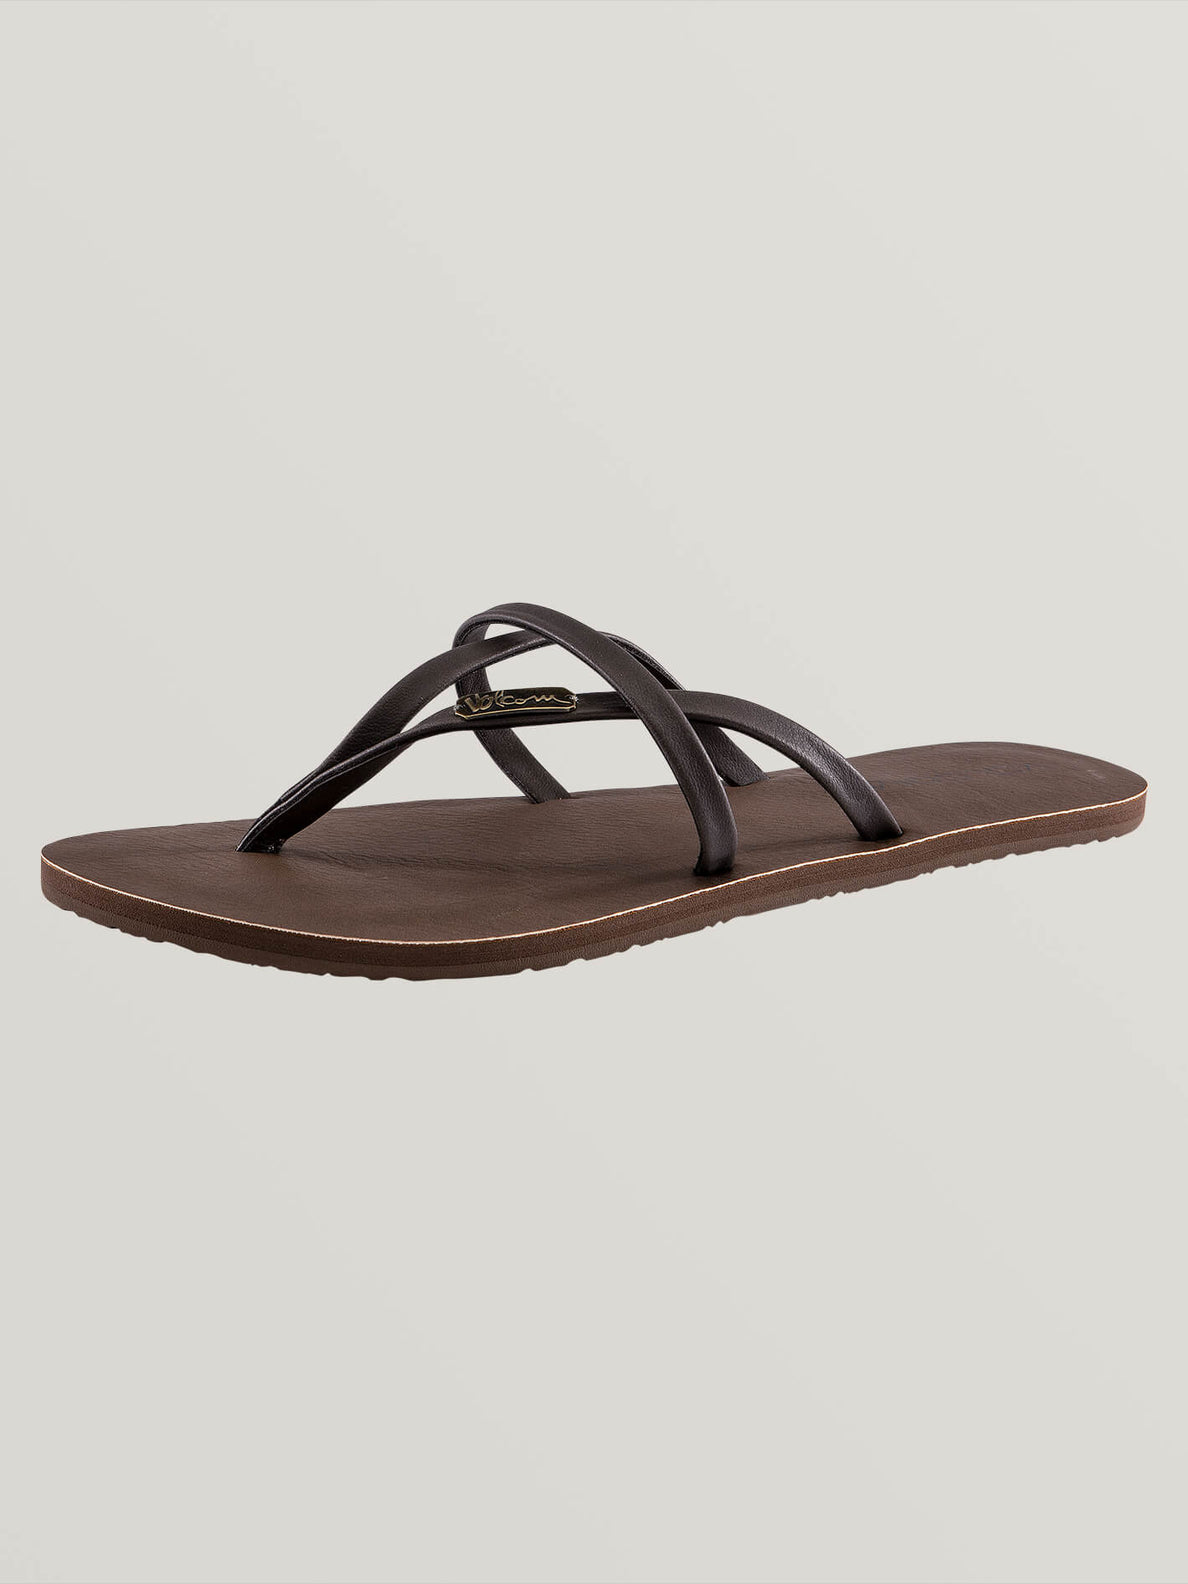 All Night Long Sandals In Brown, Back View